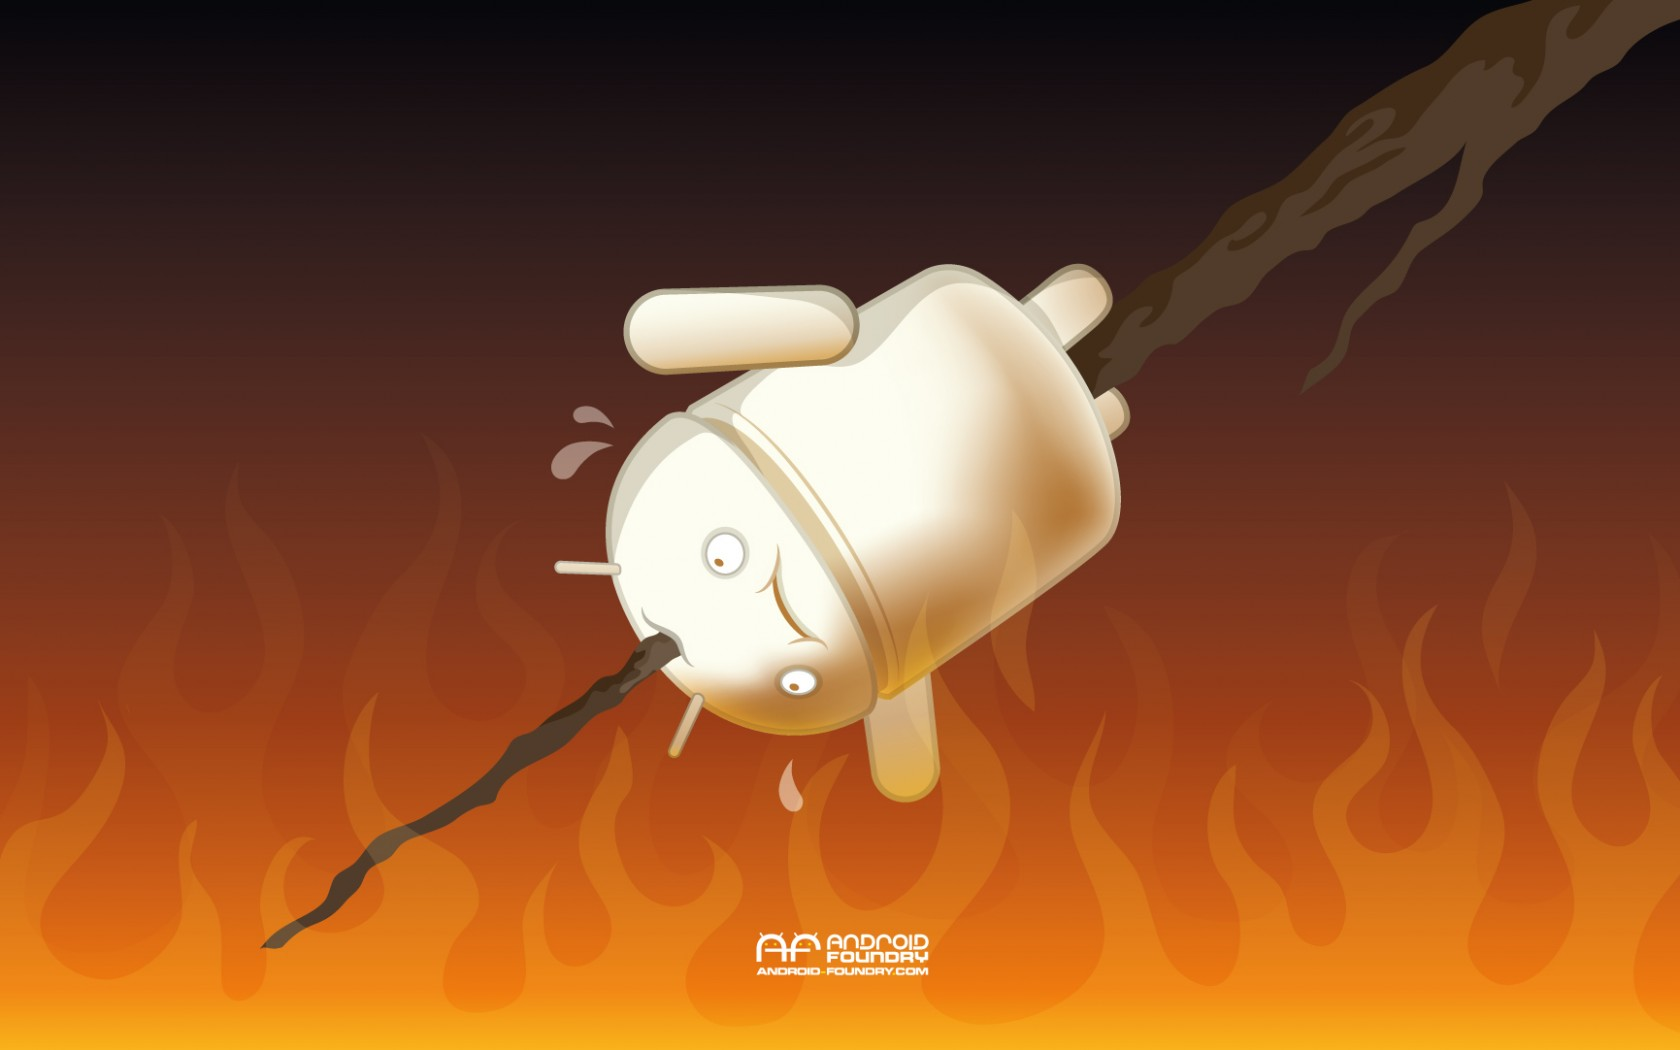 Wallpaper National Marshmallow Toasting Day Android Foundry 1680x1050